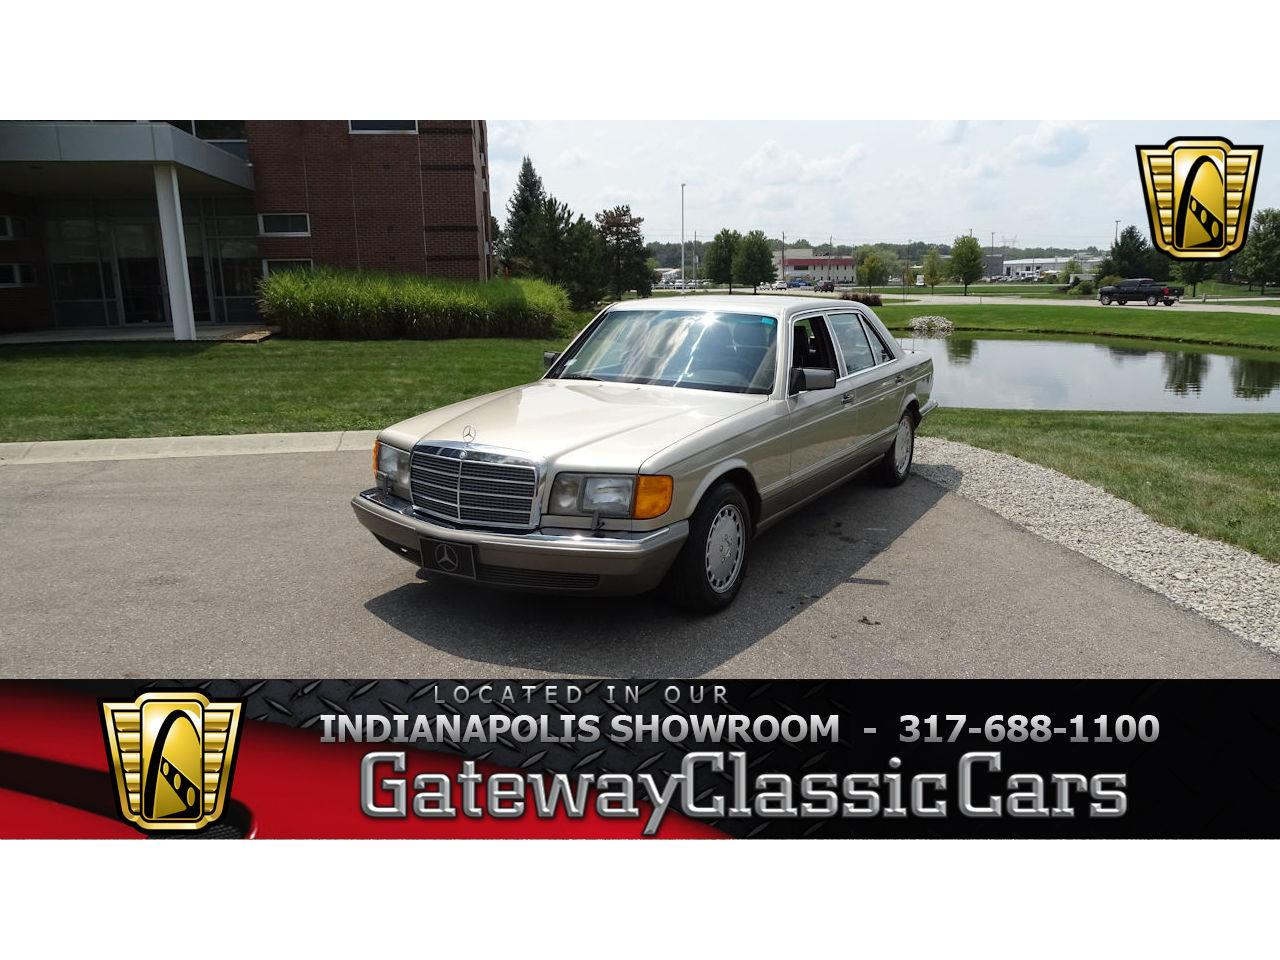 For Sale: 1987 Mercedes Benz 420SEL In Indianapolis, Indiana